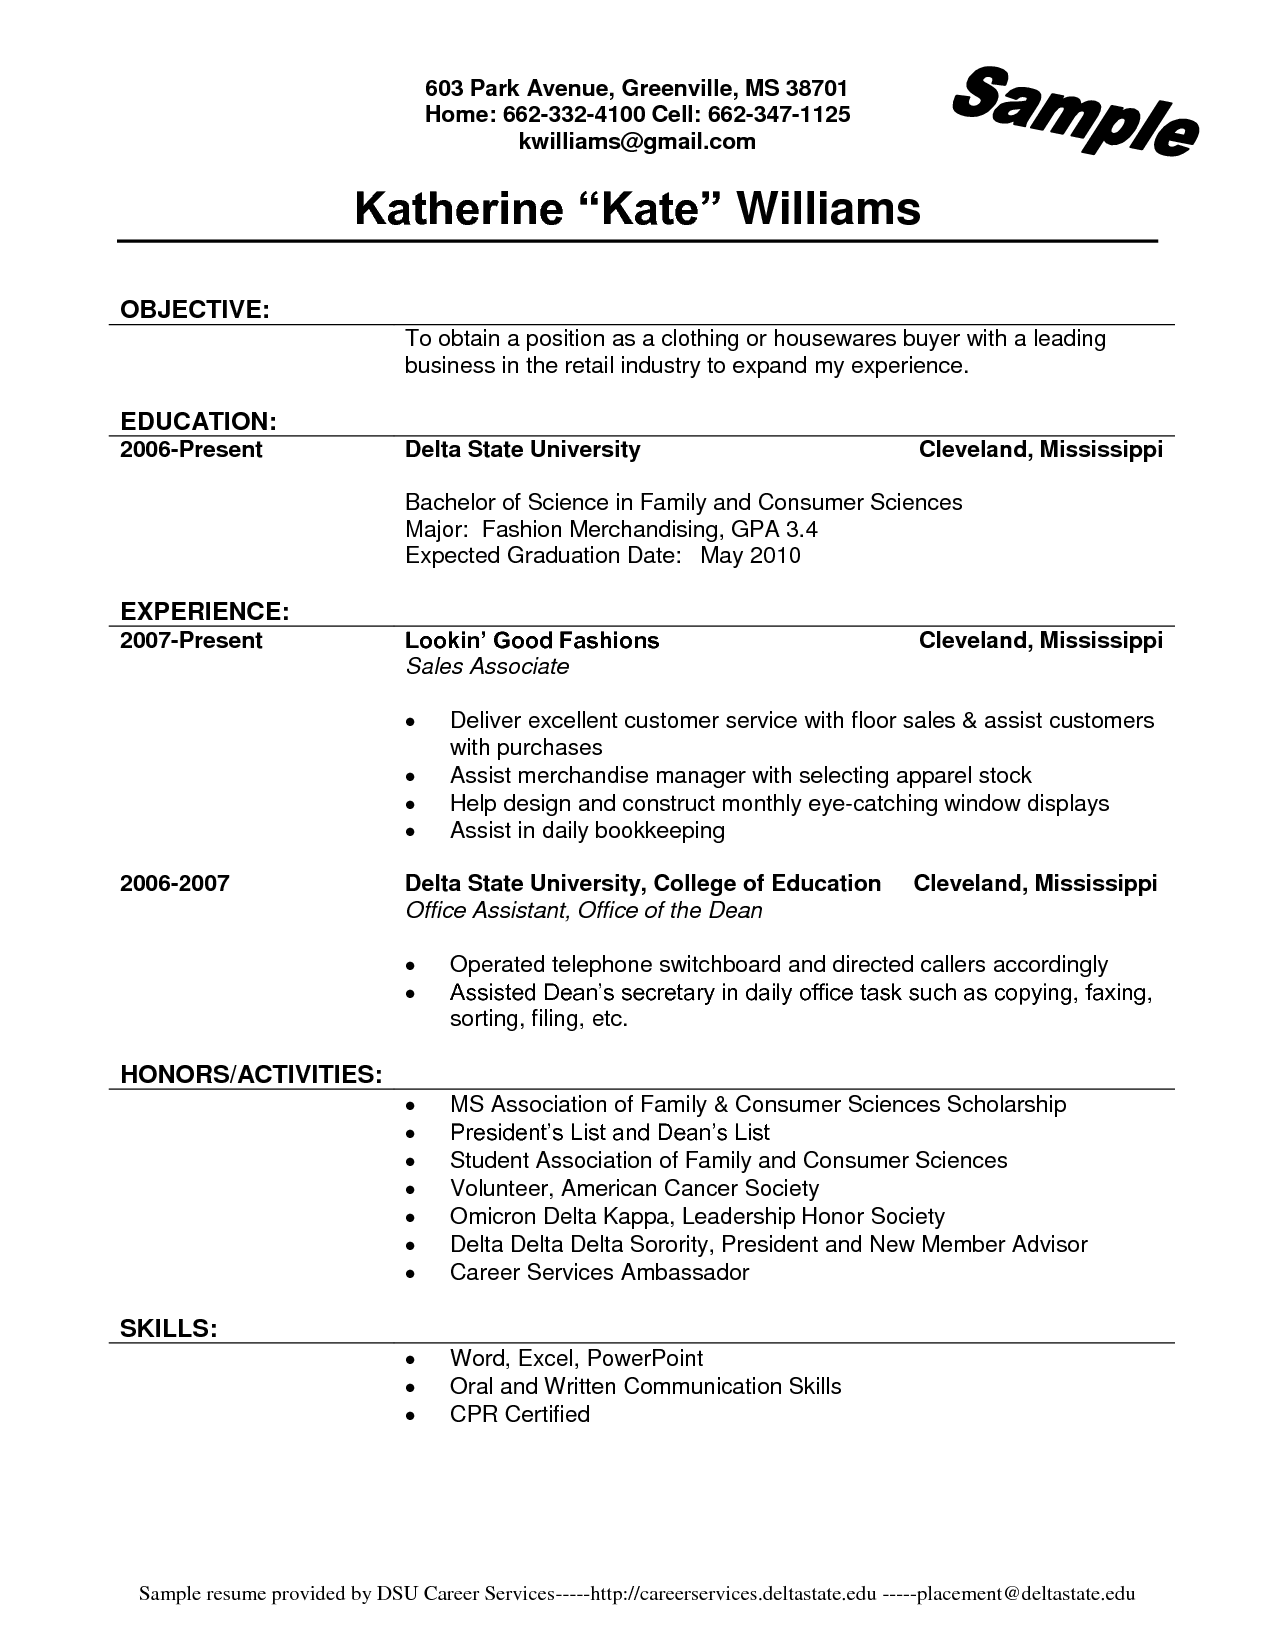 Retail Sales Resume Examples jobresumewebsiteretail – Sales Resume Sample